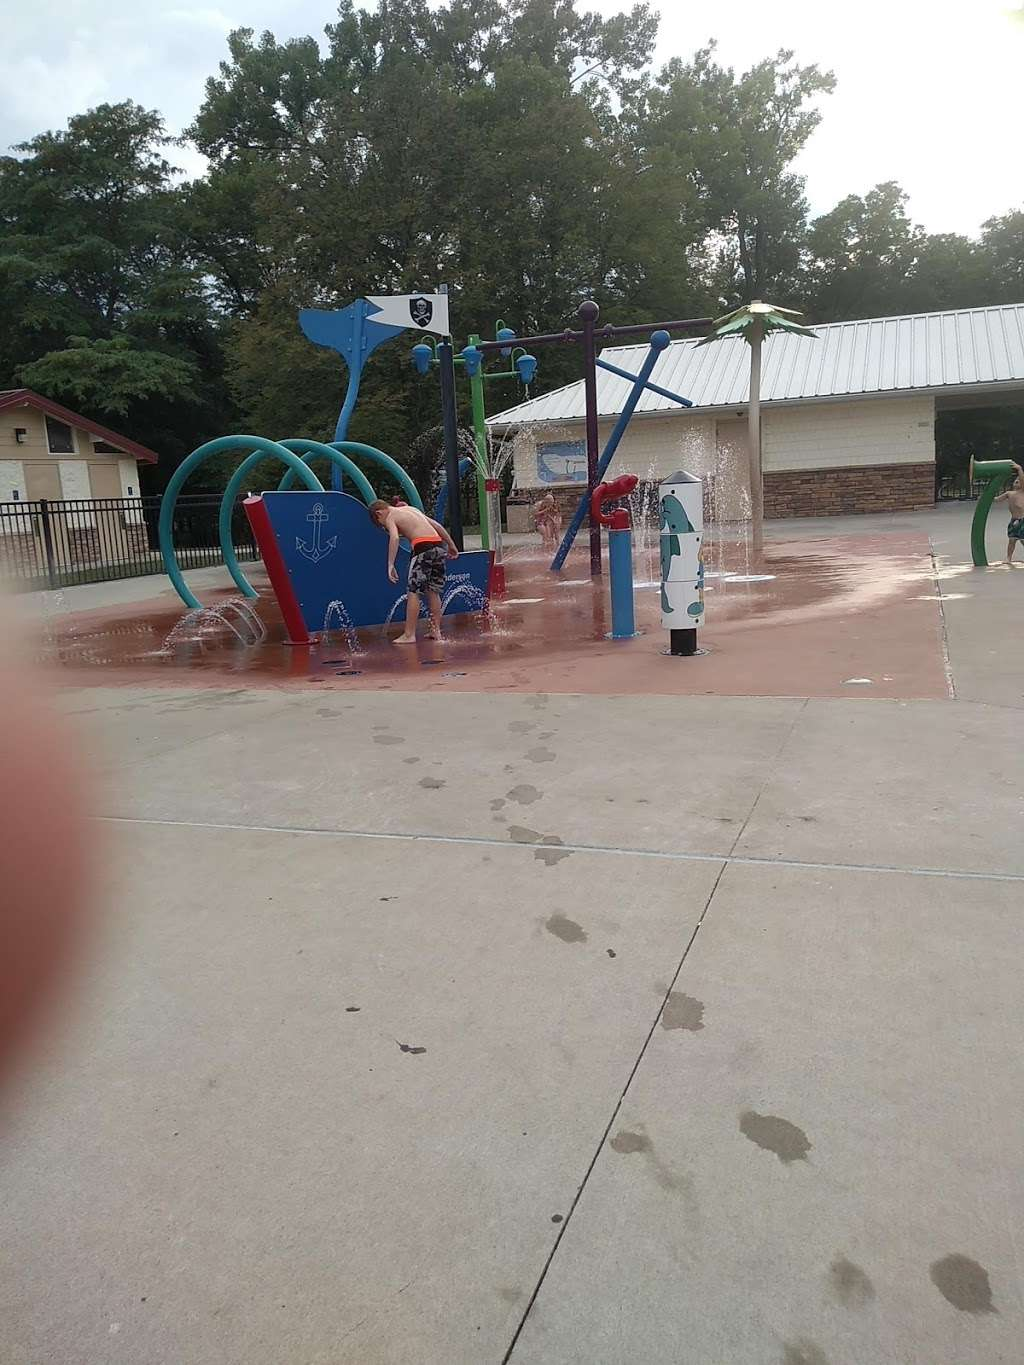 John Anderson Park & Splash Park - park  | Photo 6 of 10 | Address: 4701 E 135th St, Grandview, MO 64030, USA | Phone: (816) 316-4888